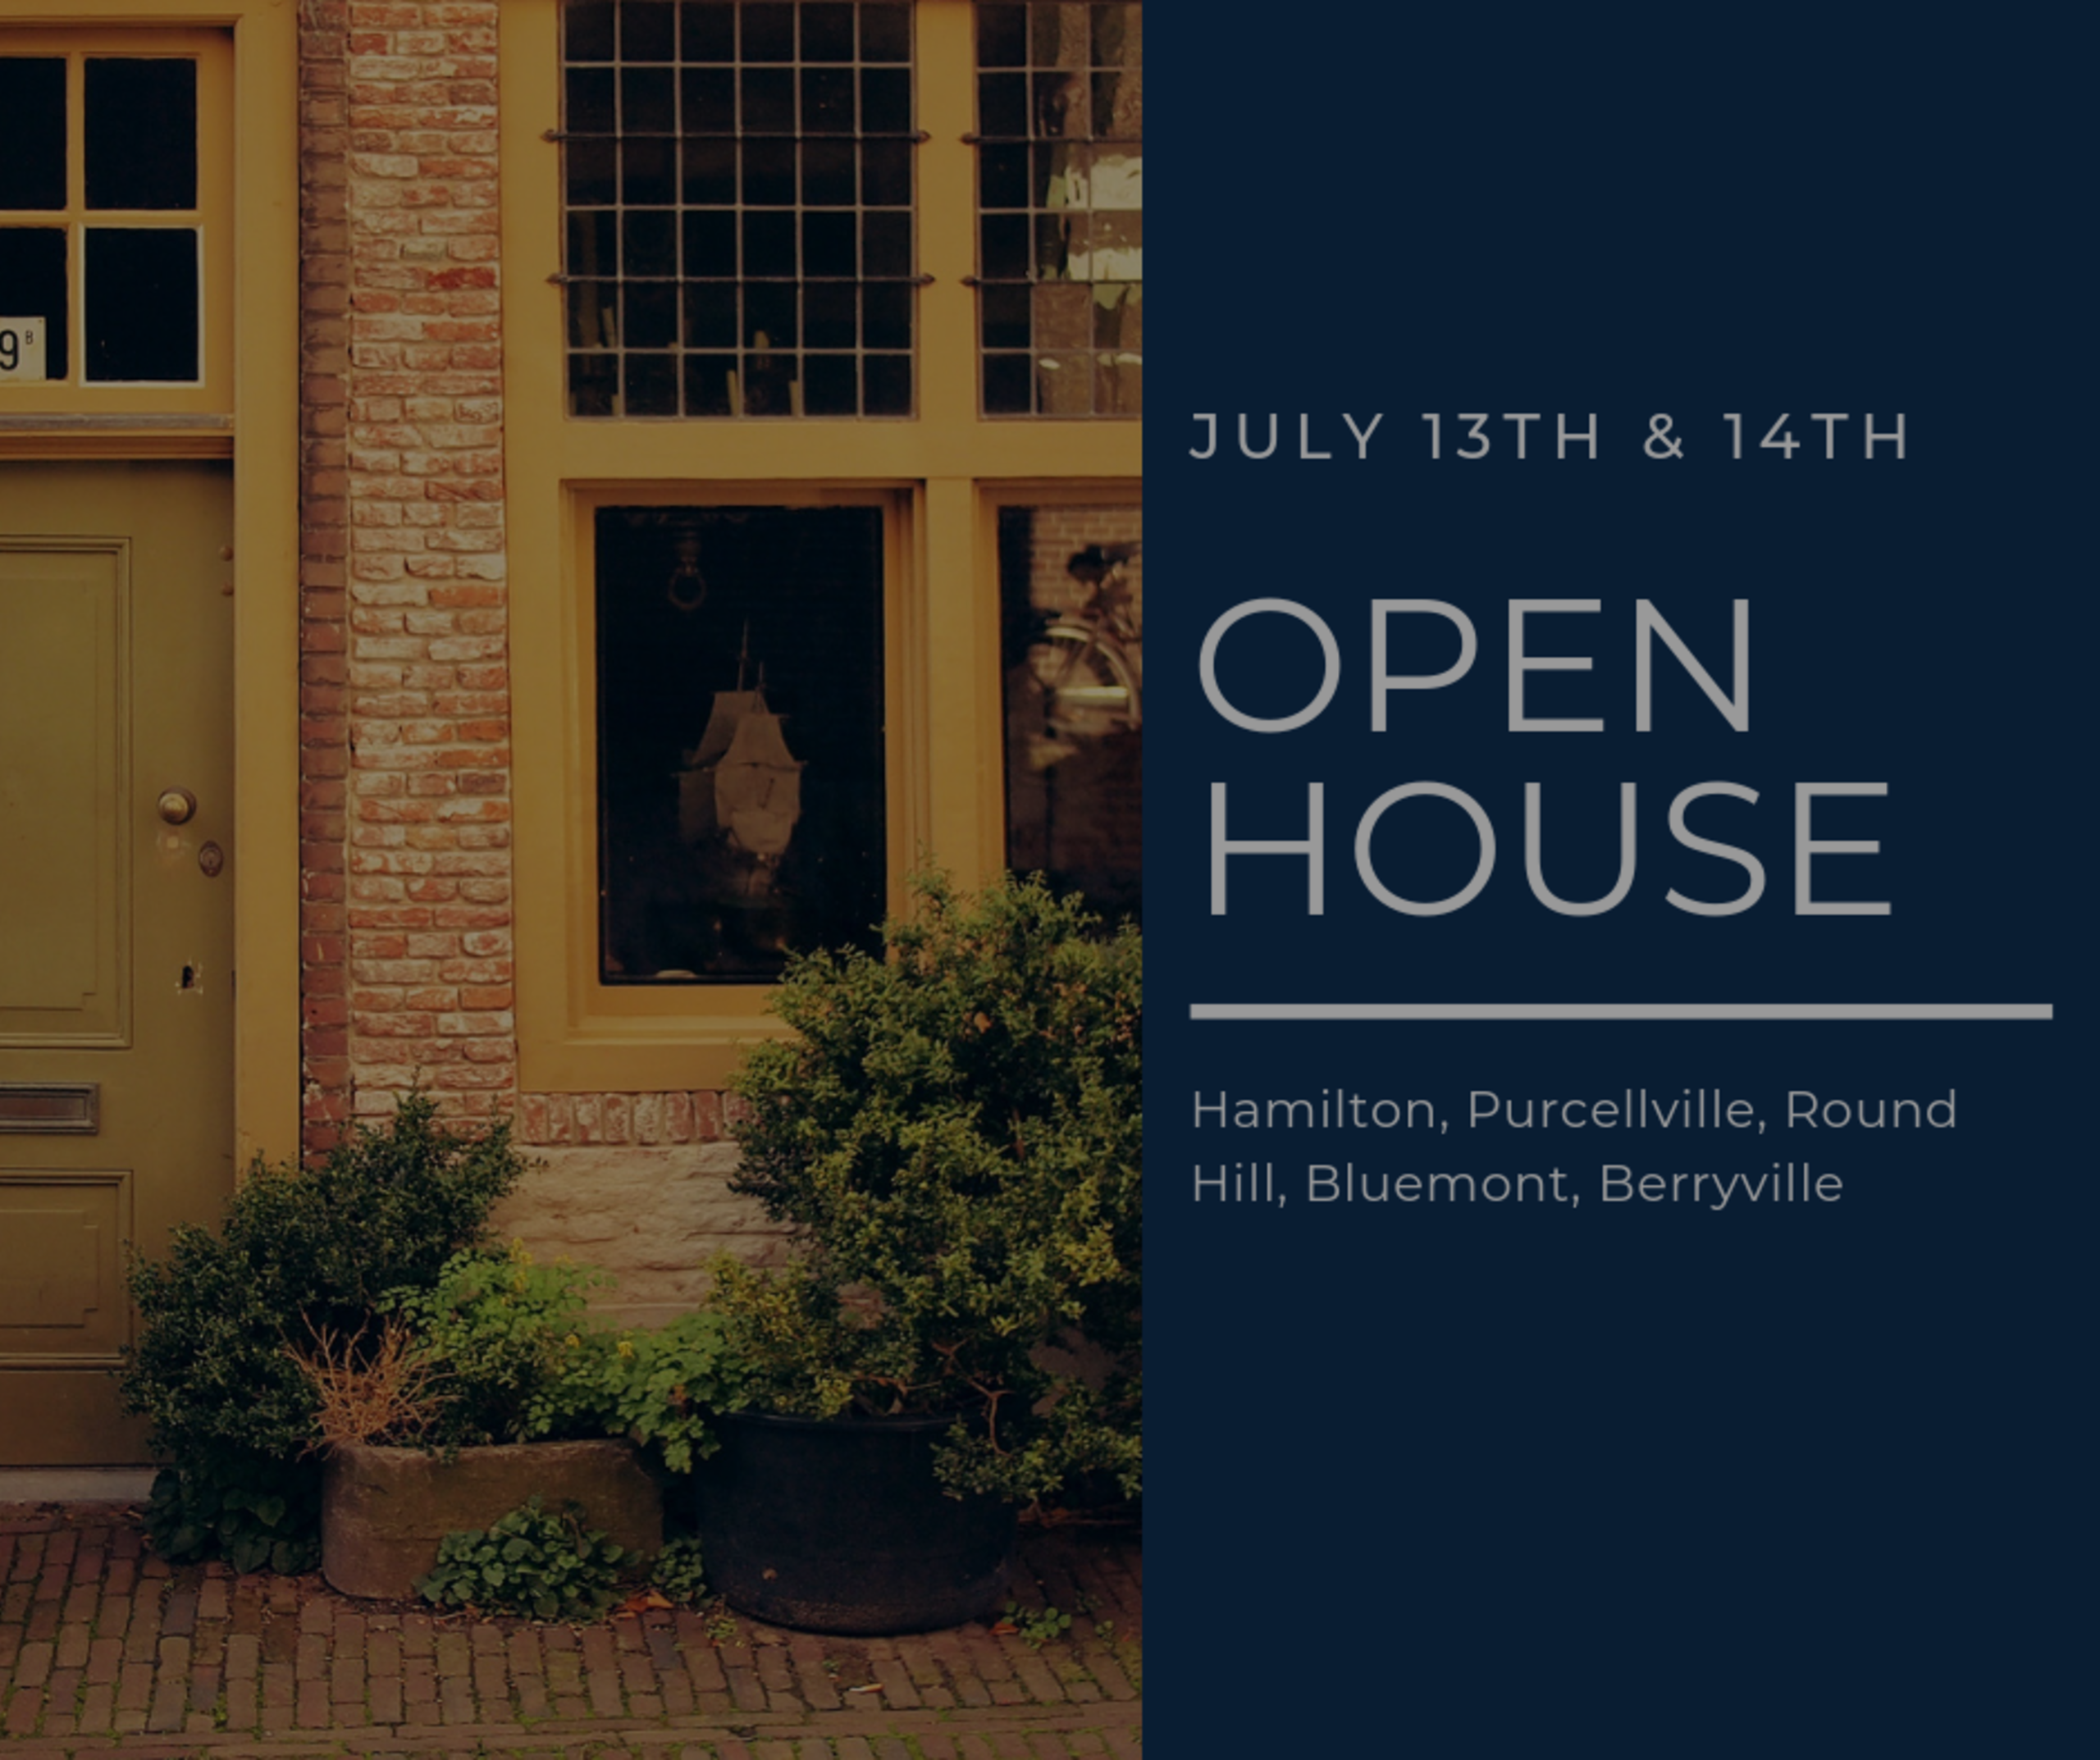 Open House List 7/13/19 – 7/14/19